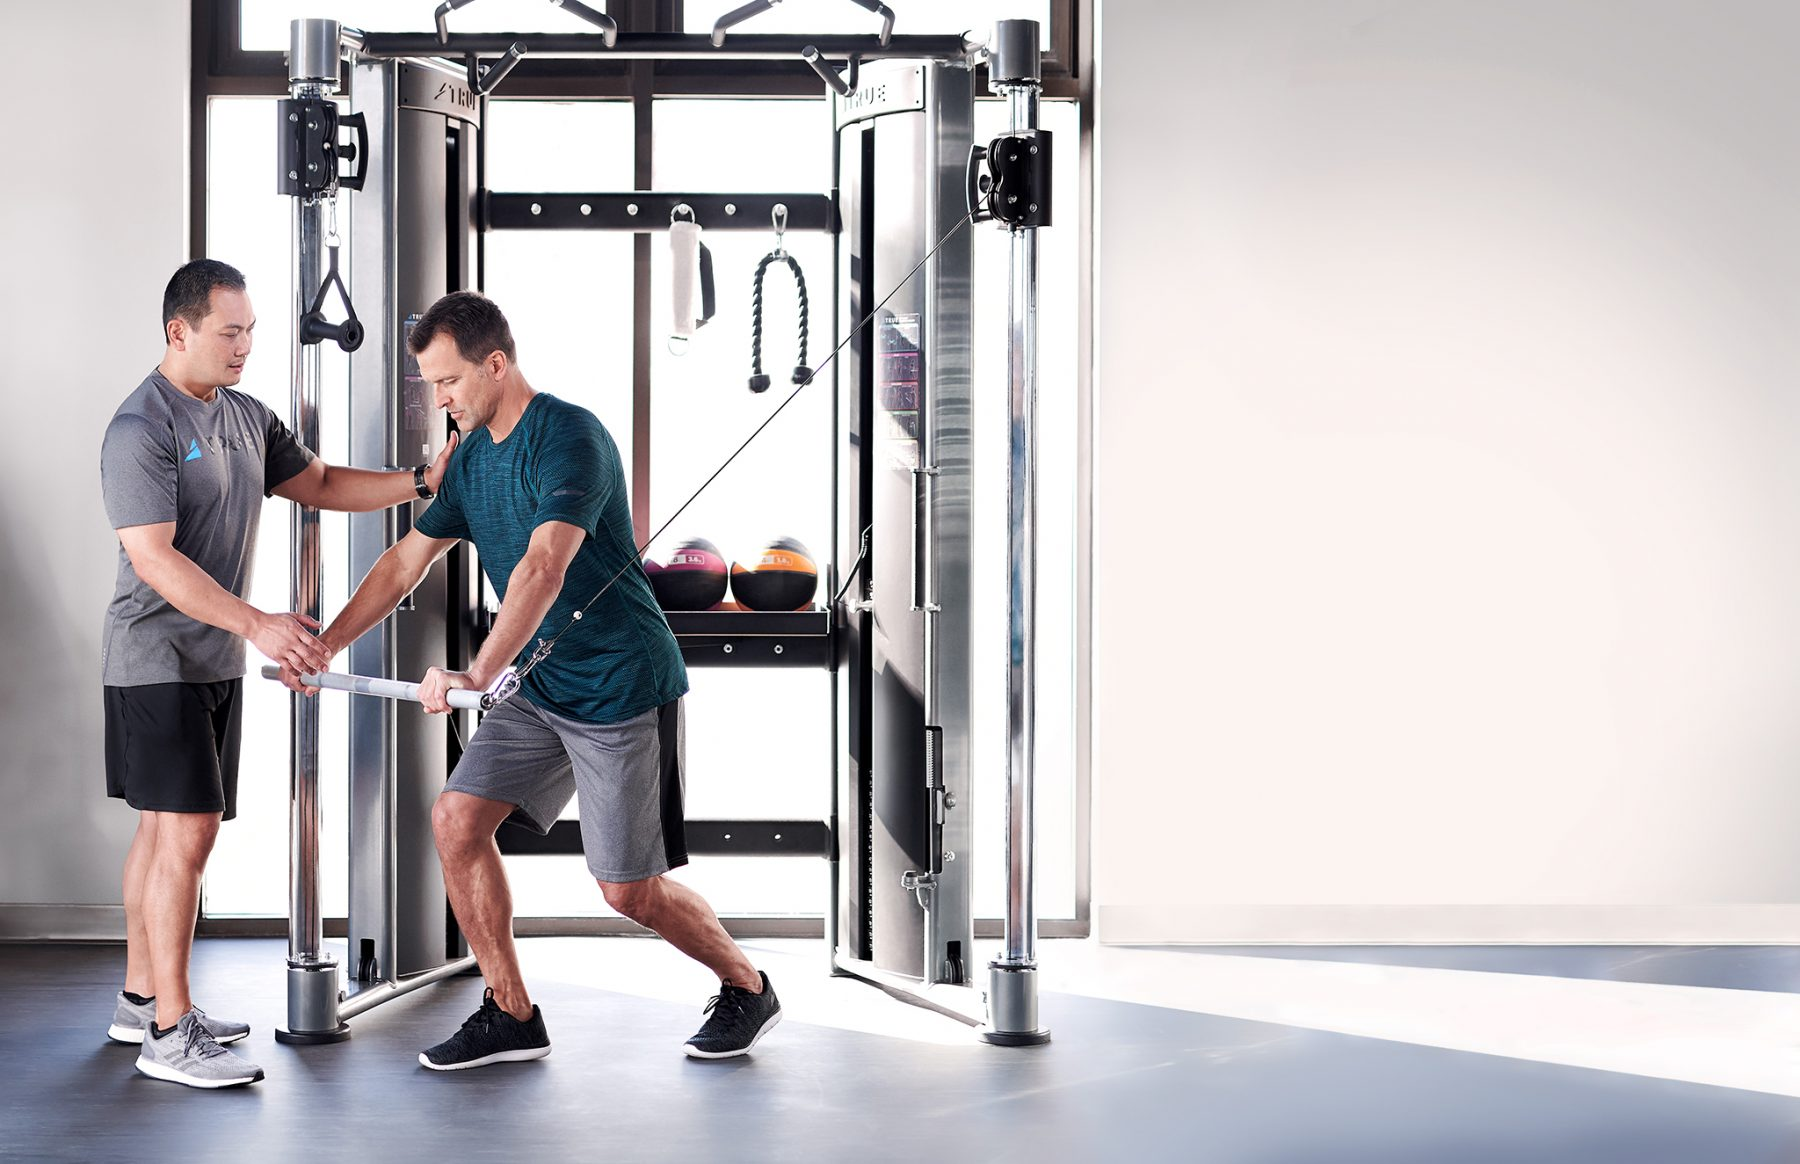 Our commercial fitness equipment is for everyone.